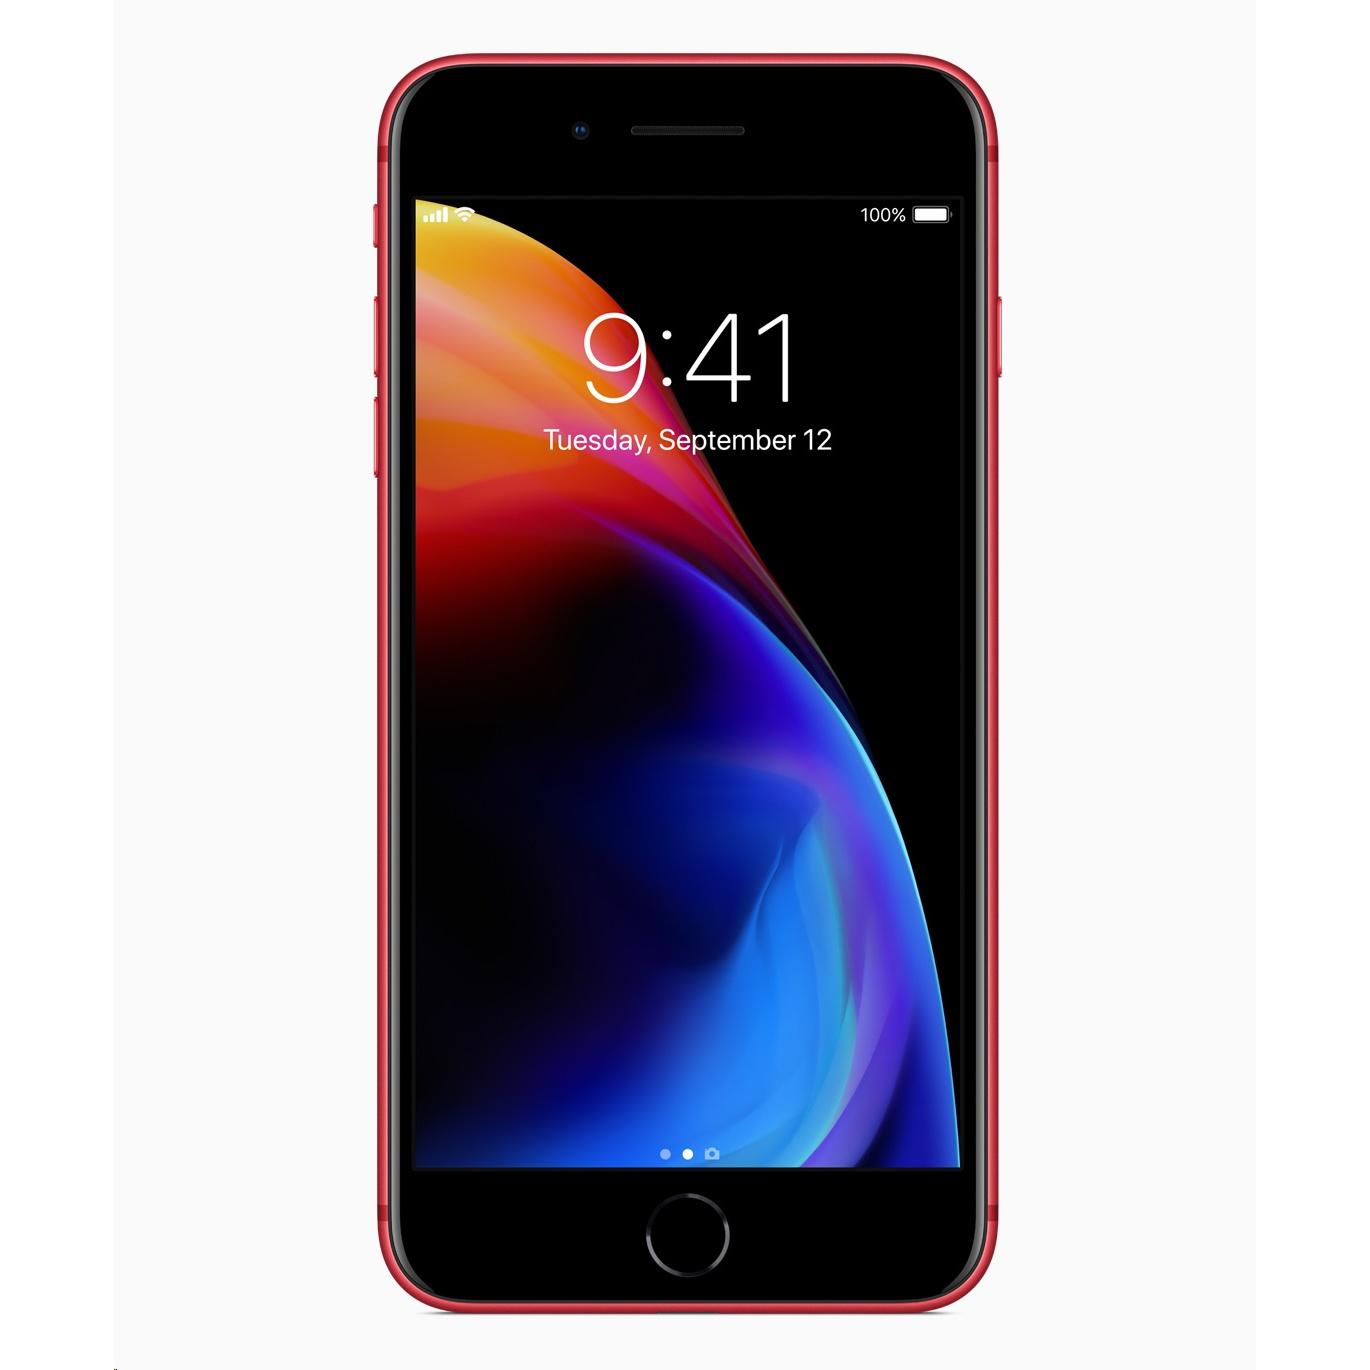 Apple Iphone 8 Plus A1864 64gb Productred Special Edition Jbl Charger 8plus New Speaker Bluetooth Mini Portable